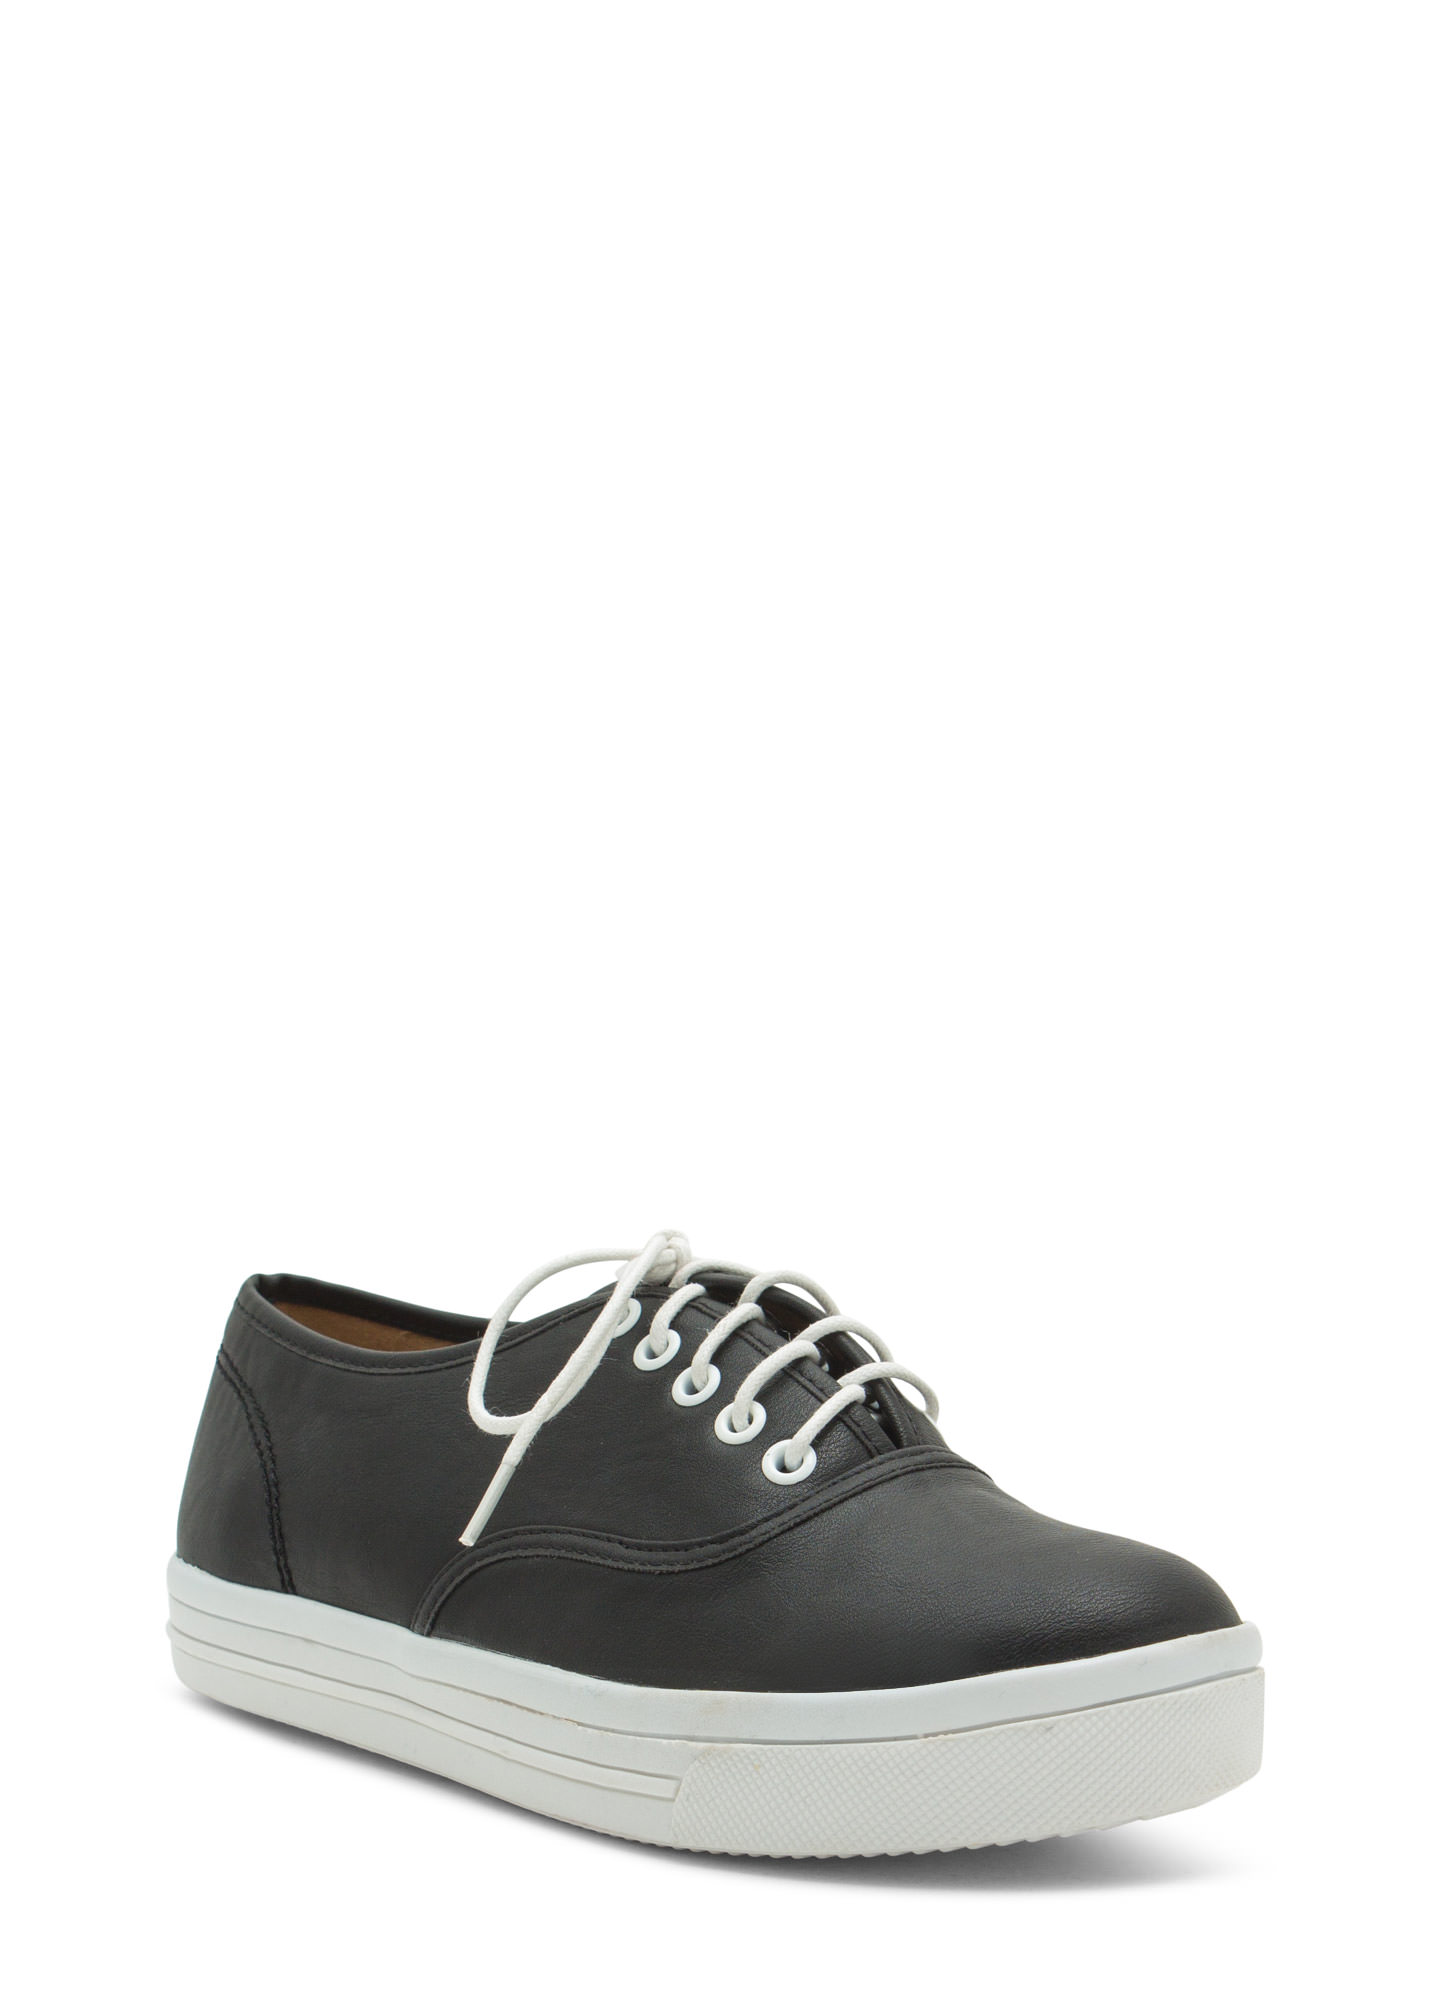 Rock Out Faux Leather Platform Sneakers BLACK